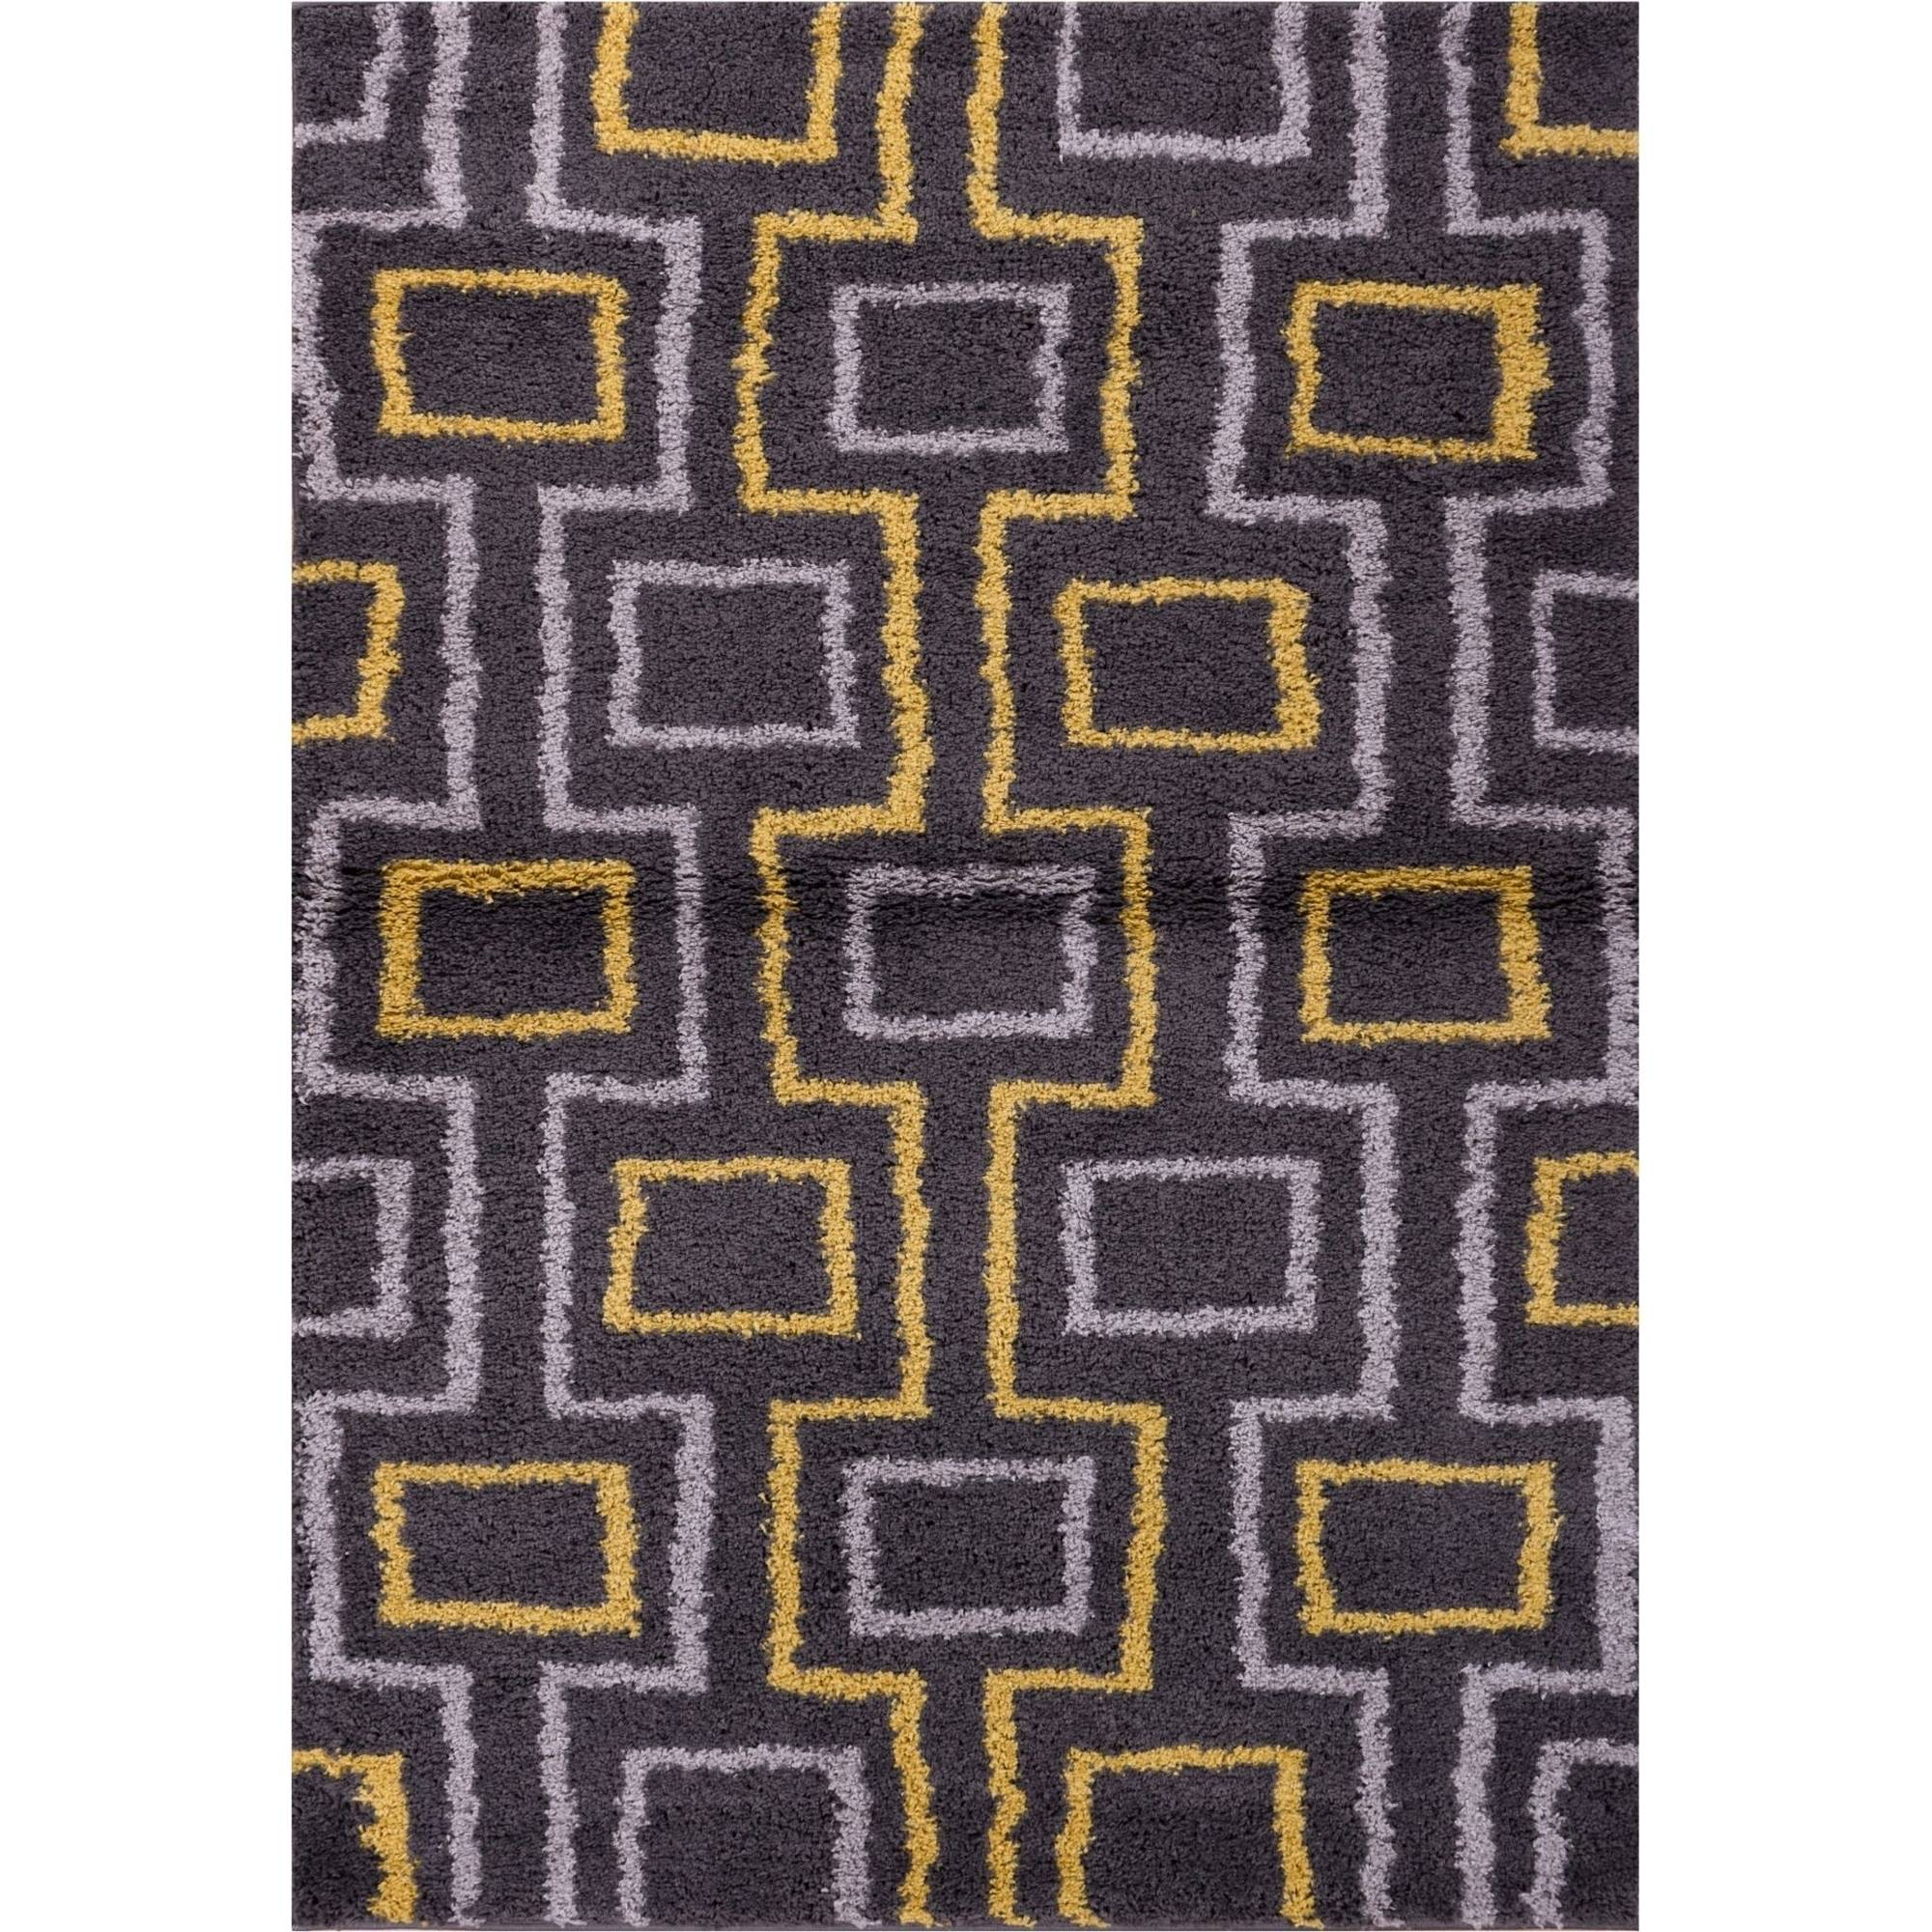 Well Woven Madison Shag Prism Place Modern Area Rug, Grey Gold